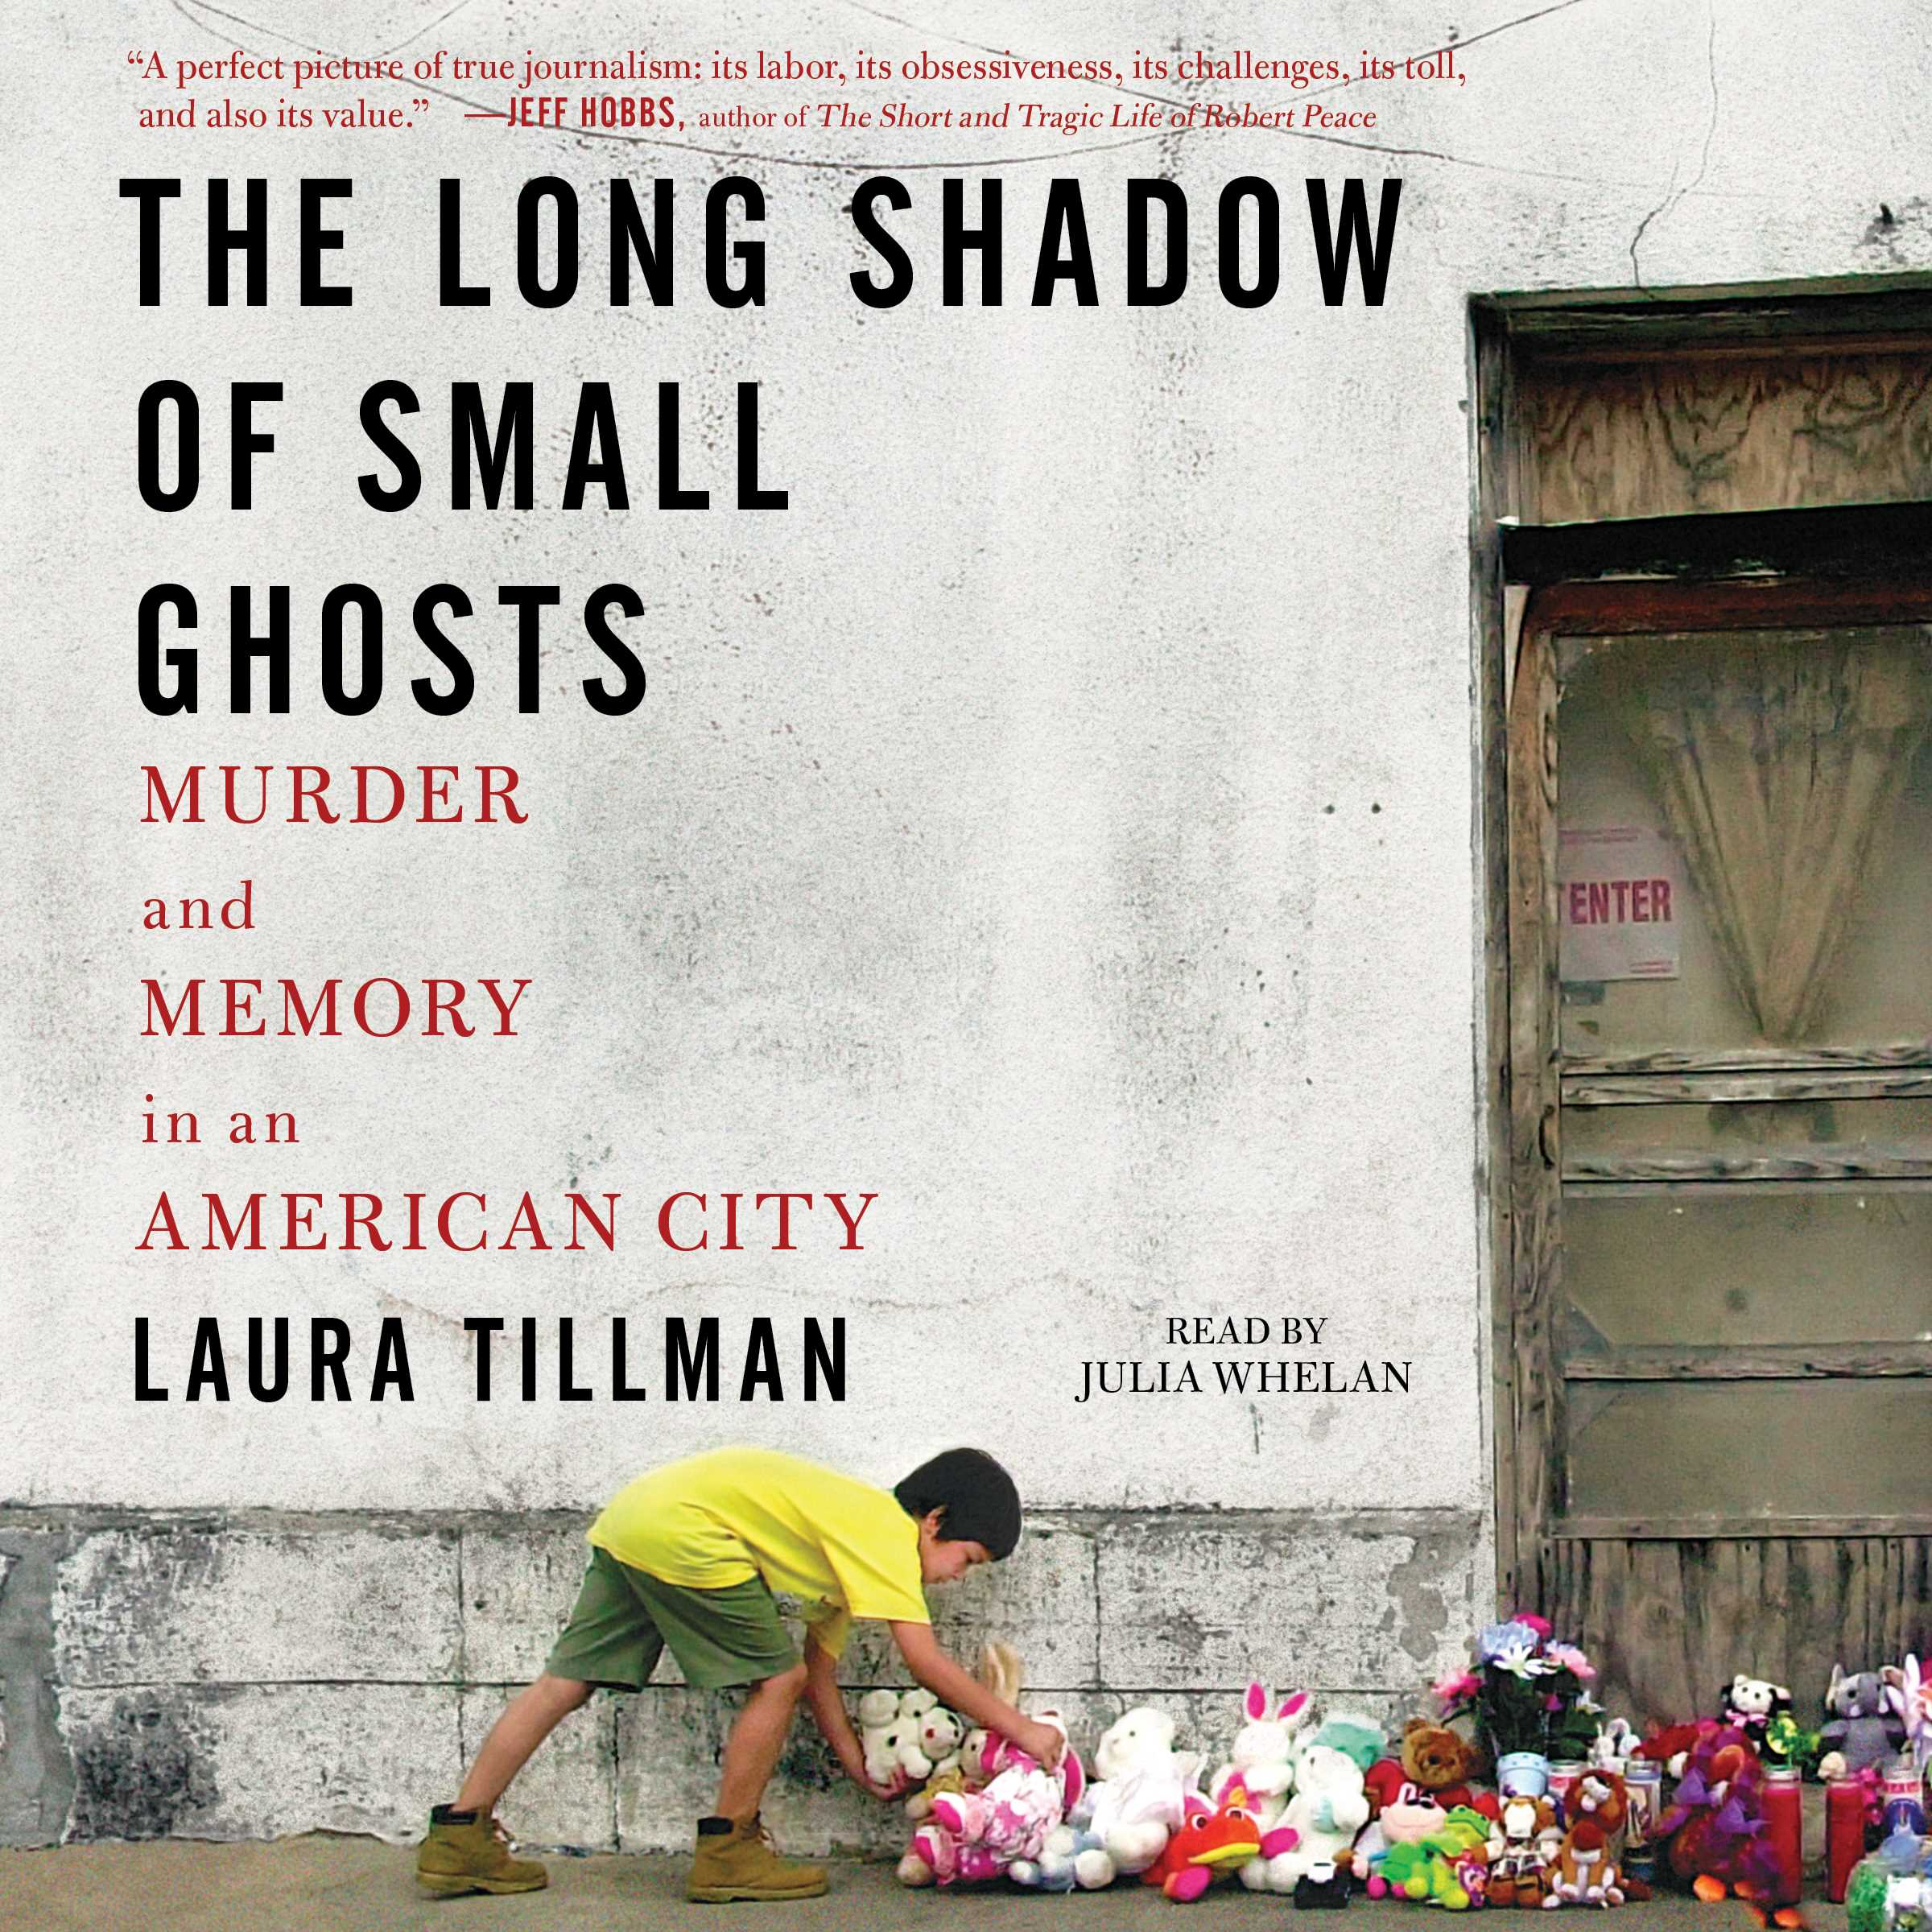 The long shadow of small ghosts 9781508214403 hr